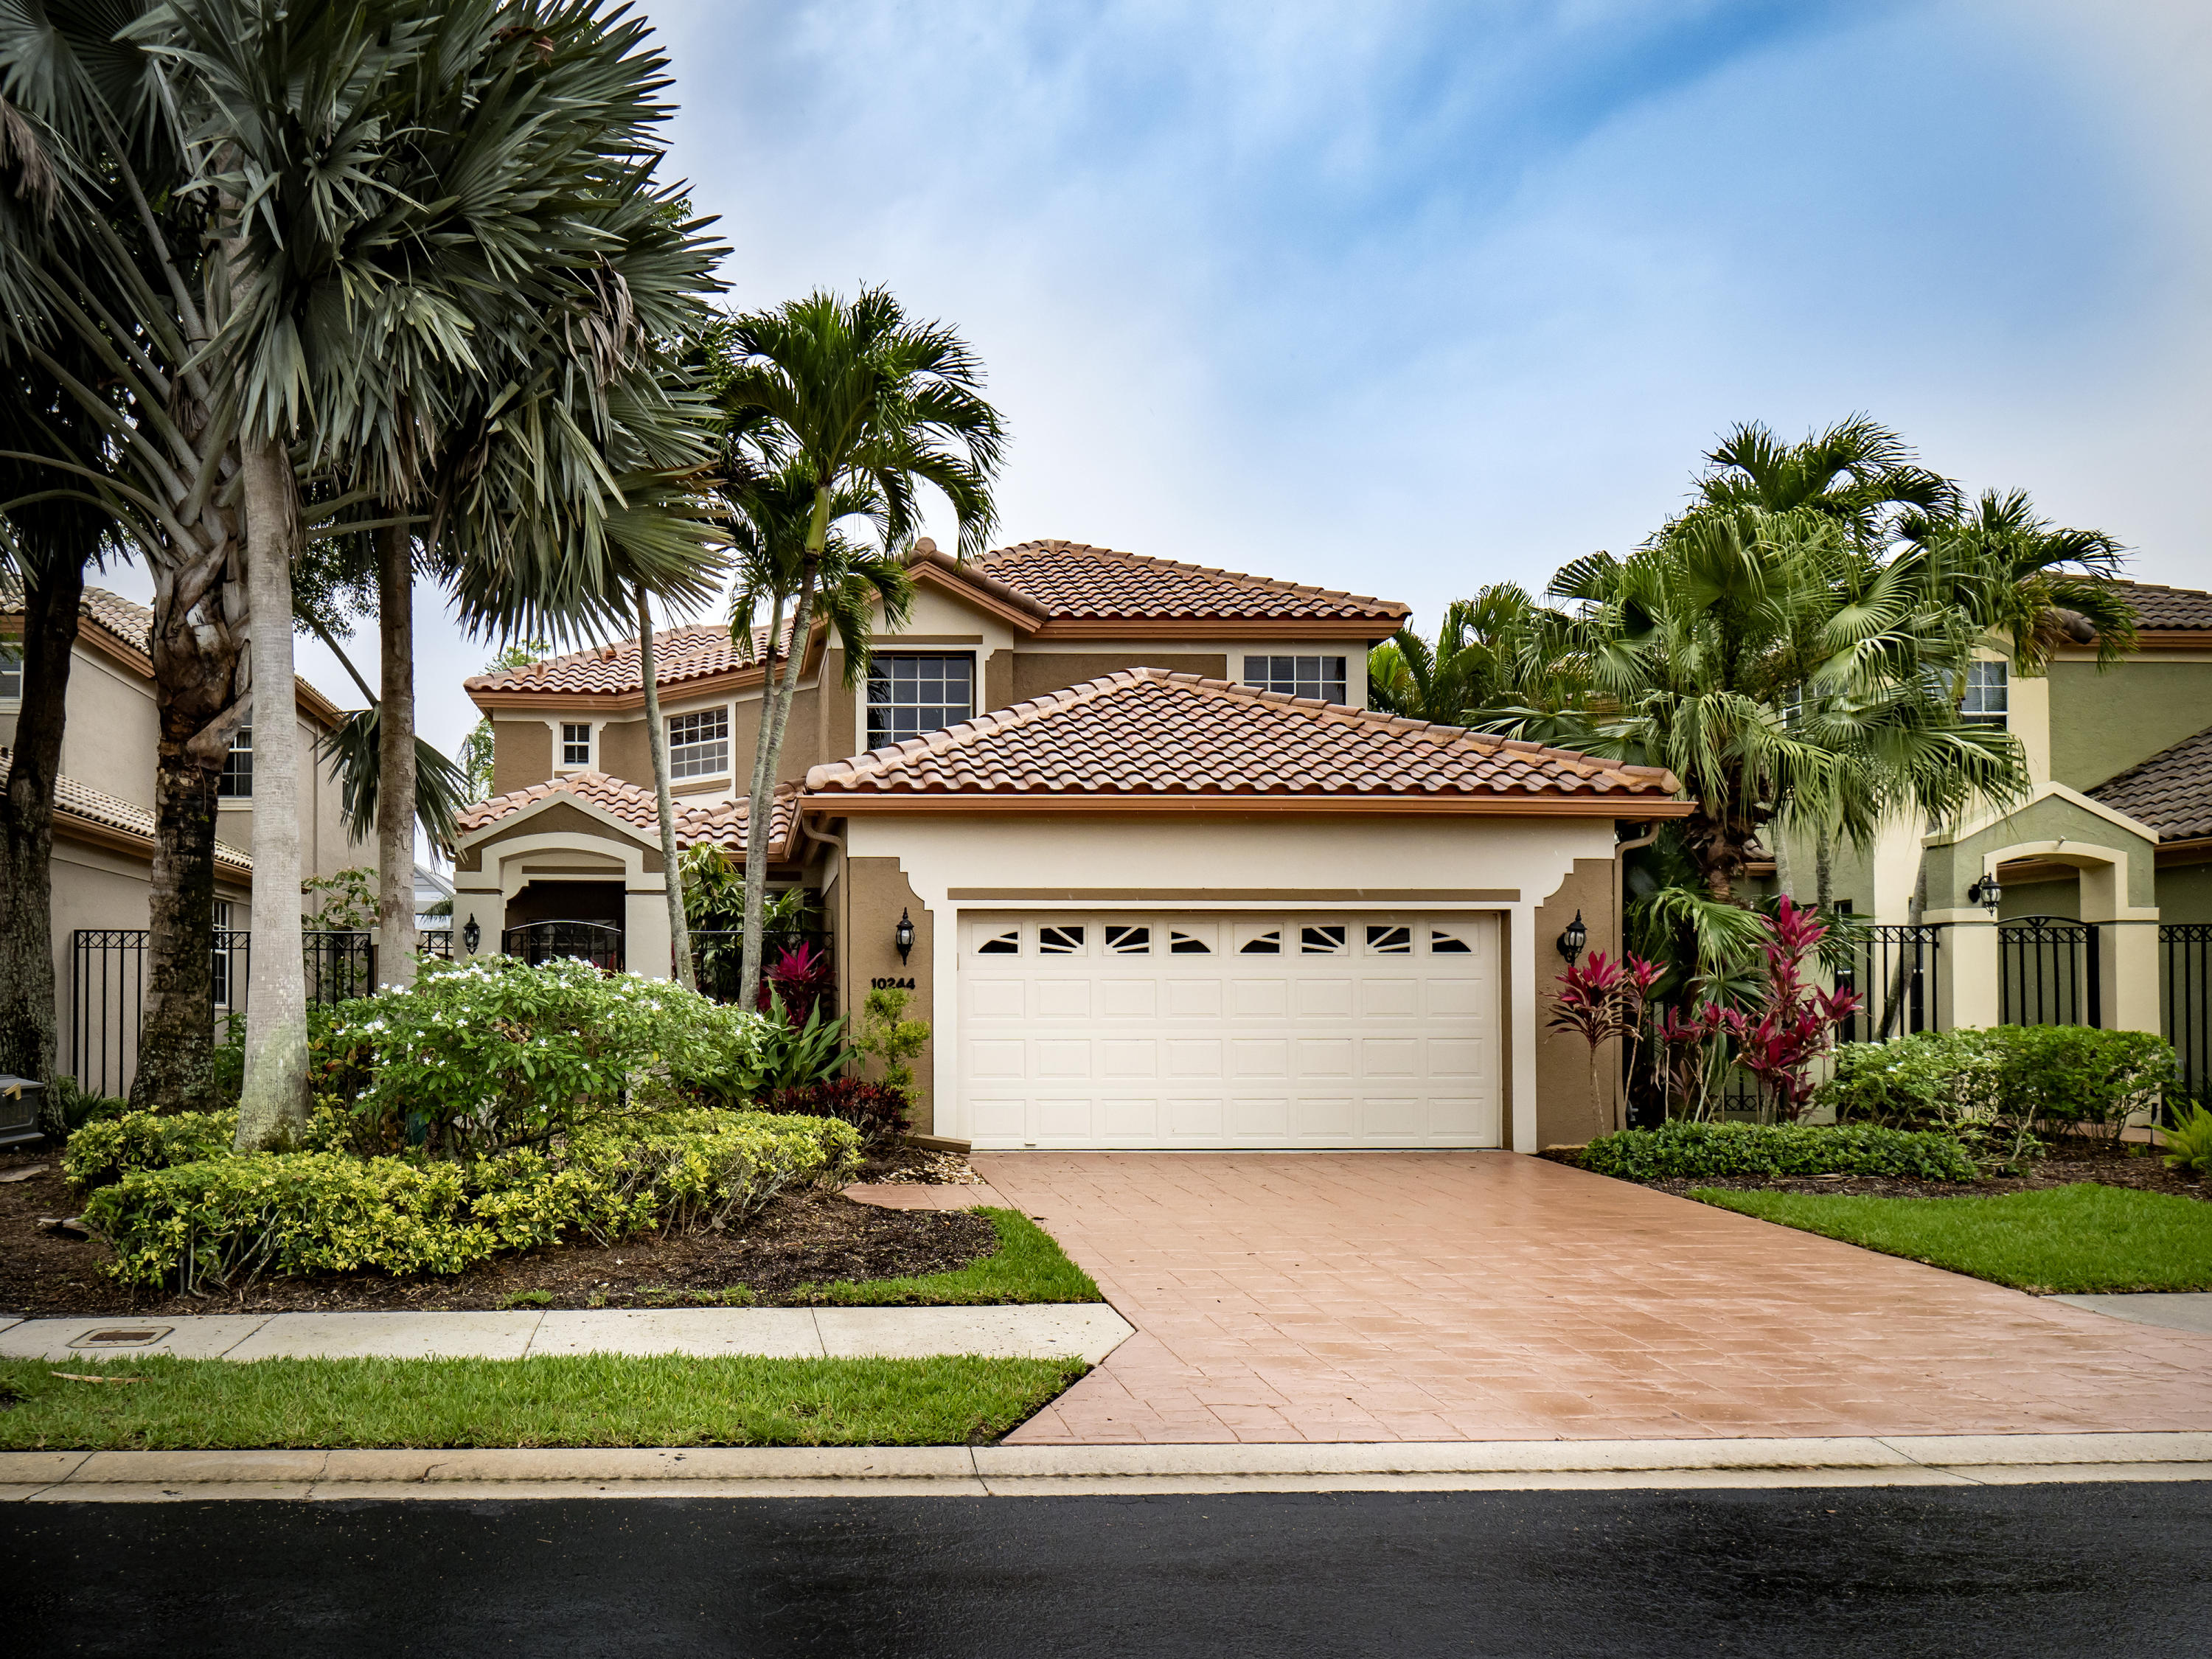 10244 Osprey Trace, West Palm Beach, Florida 33412, 3 Bedrooms Bedrooms, ,4 BathroomsBathrooms,A,Single family,Osprey,RX-10417834